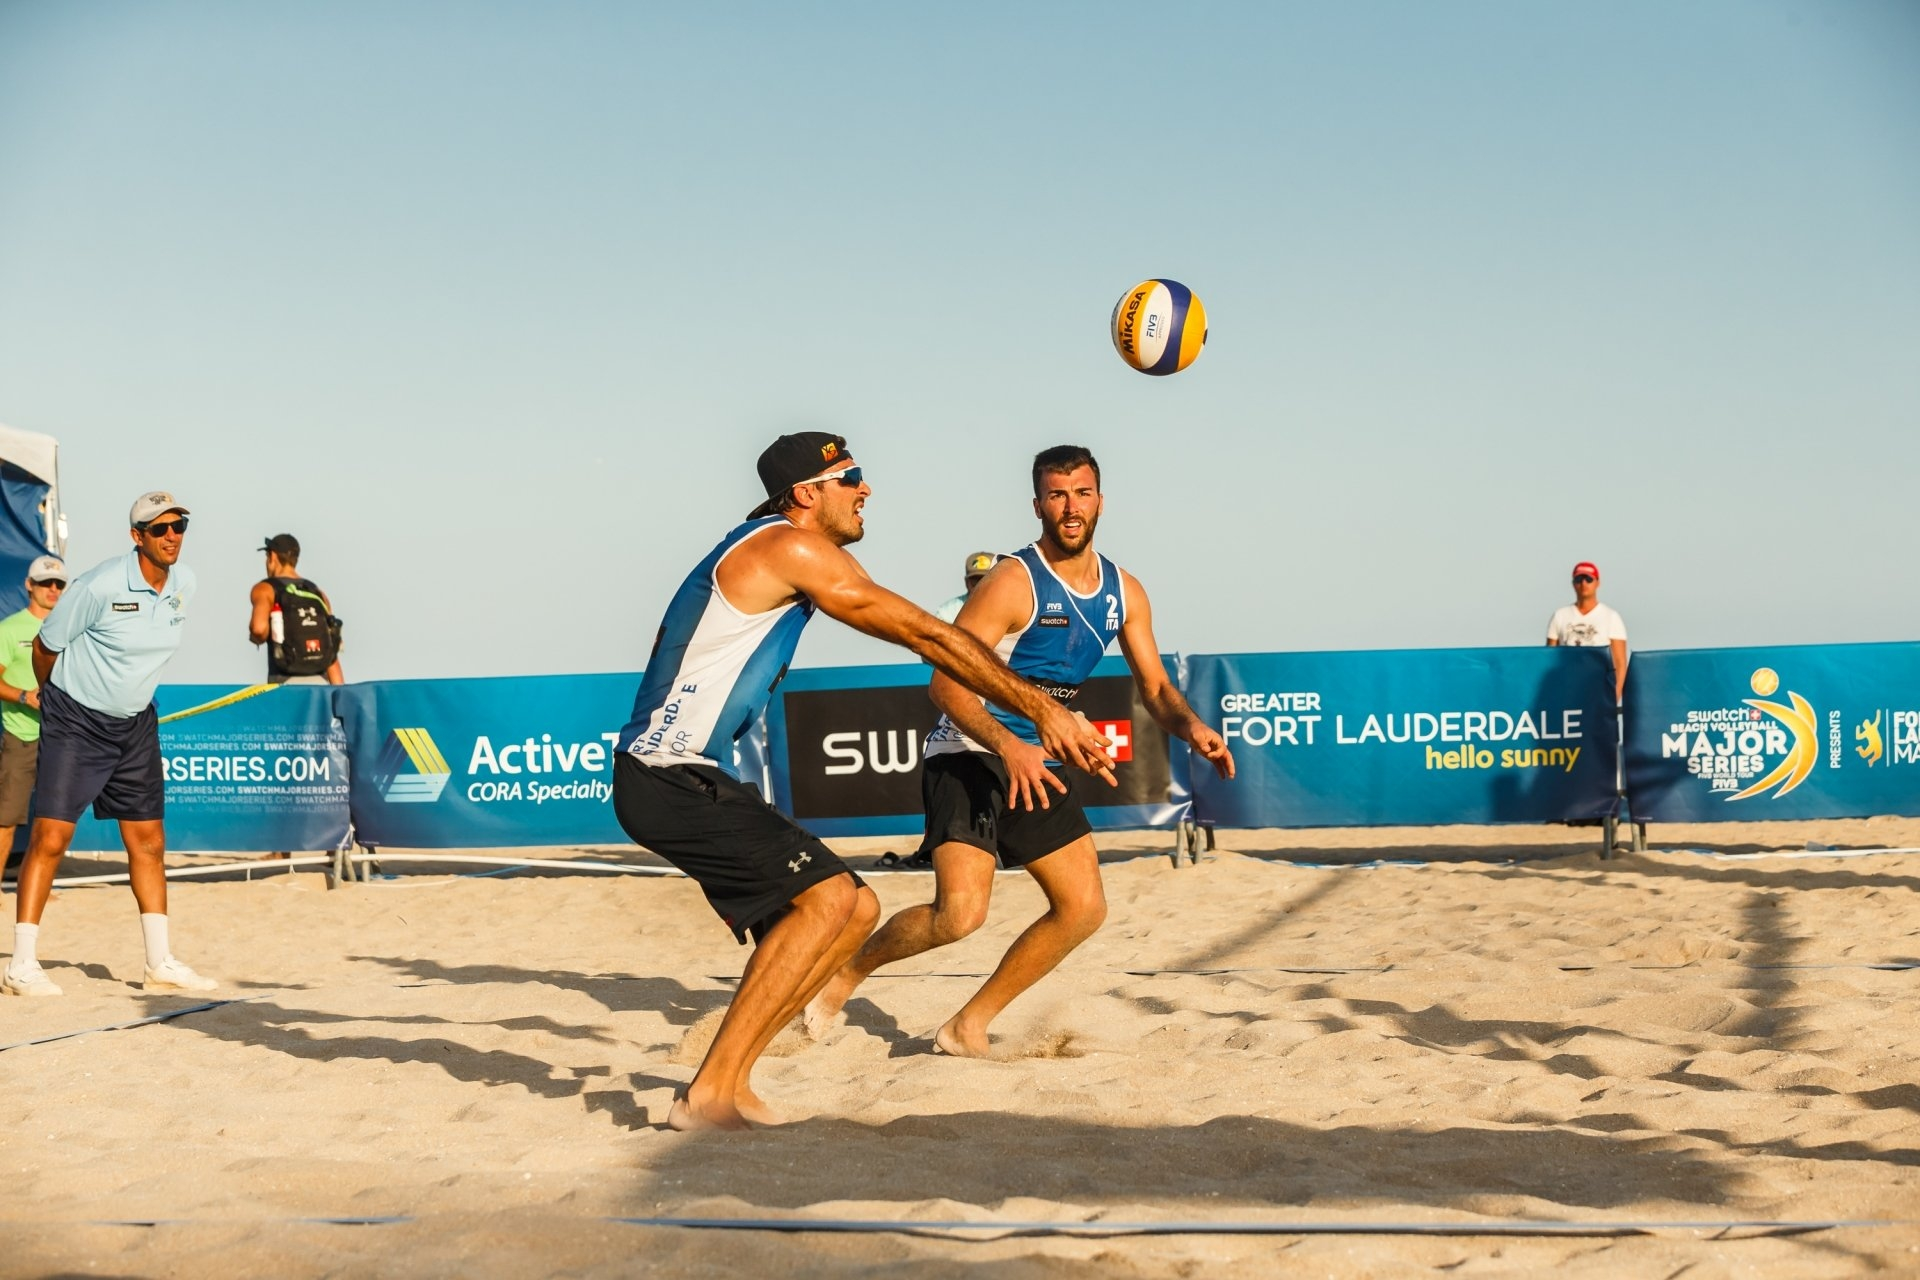 Italians Alex Ranghieri and Marco Caminati are among the top teams in Kish Island